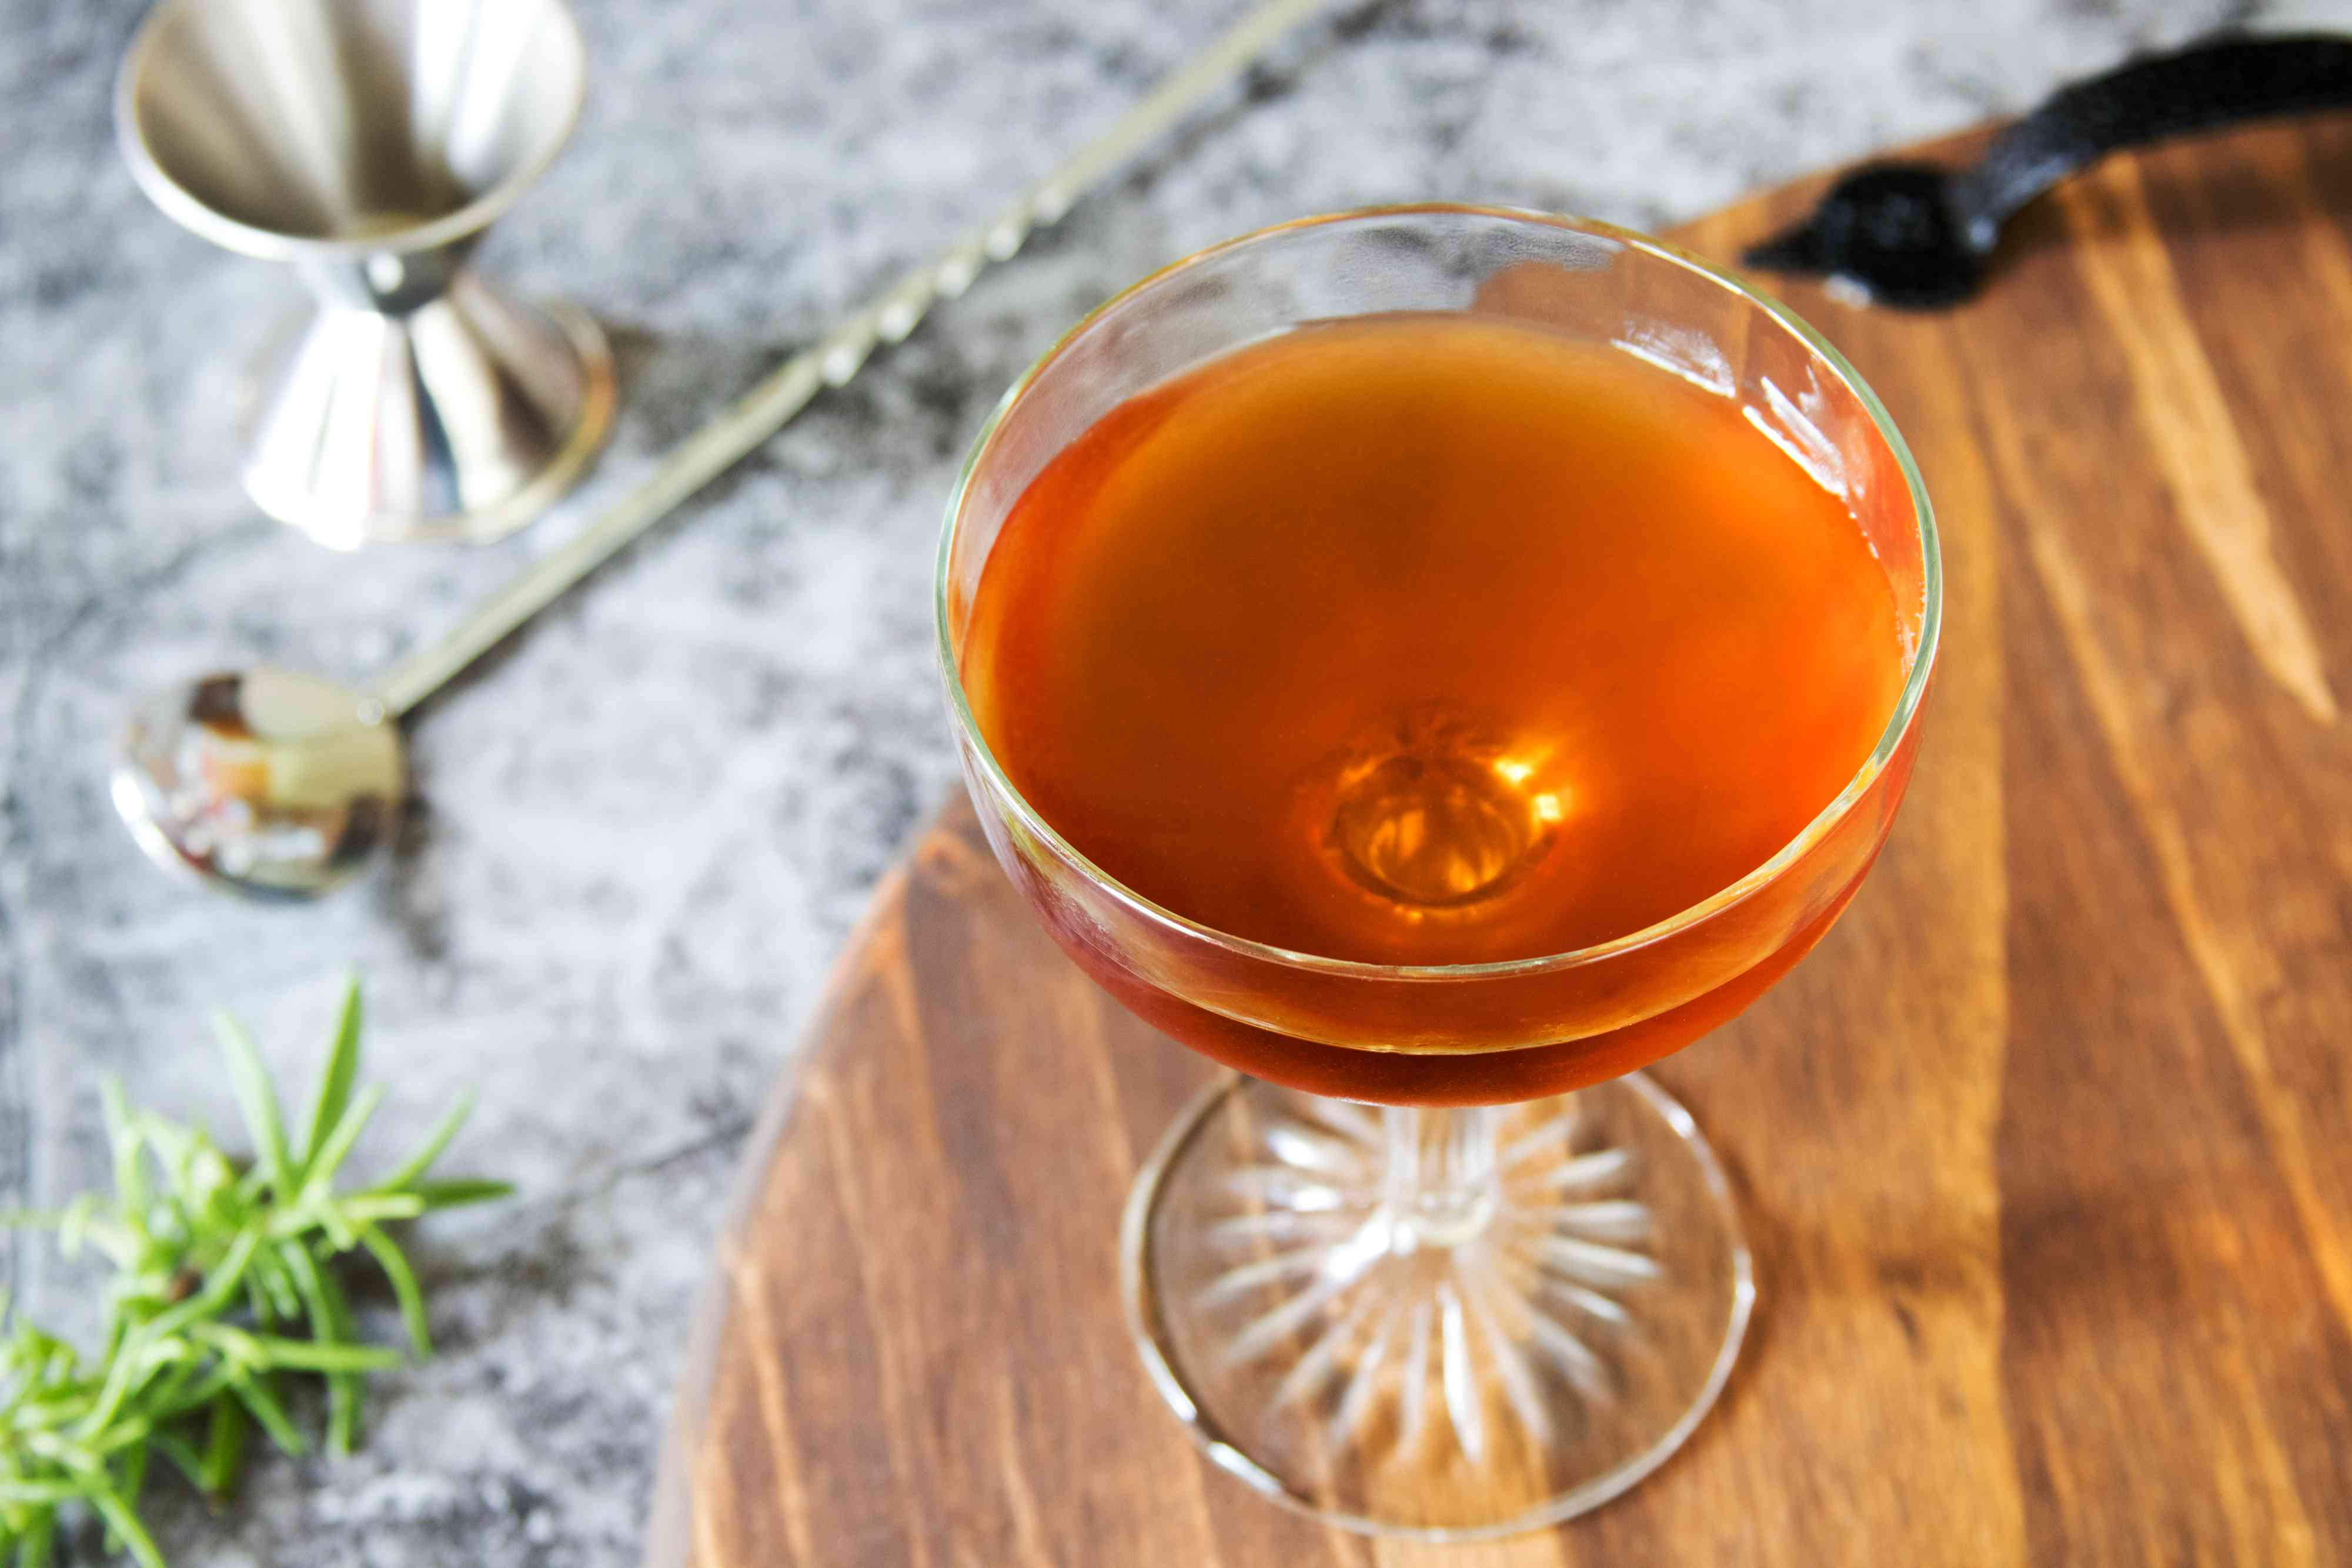 Smoked Rose Scotch Whisky Cocktail